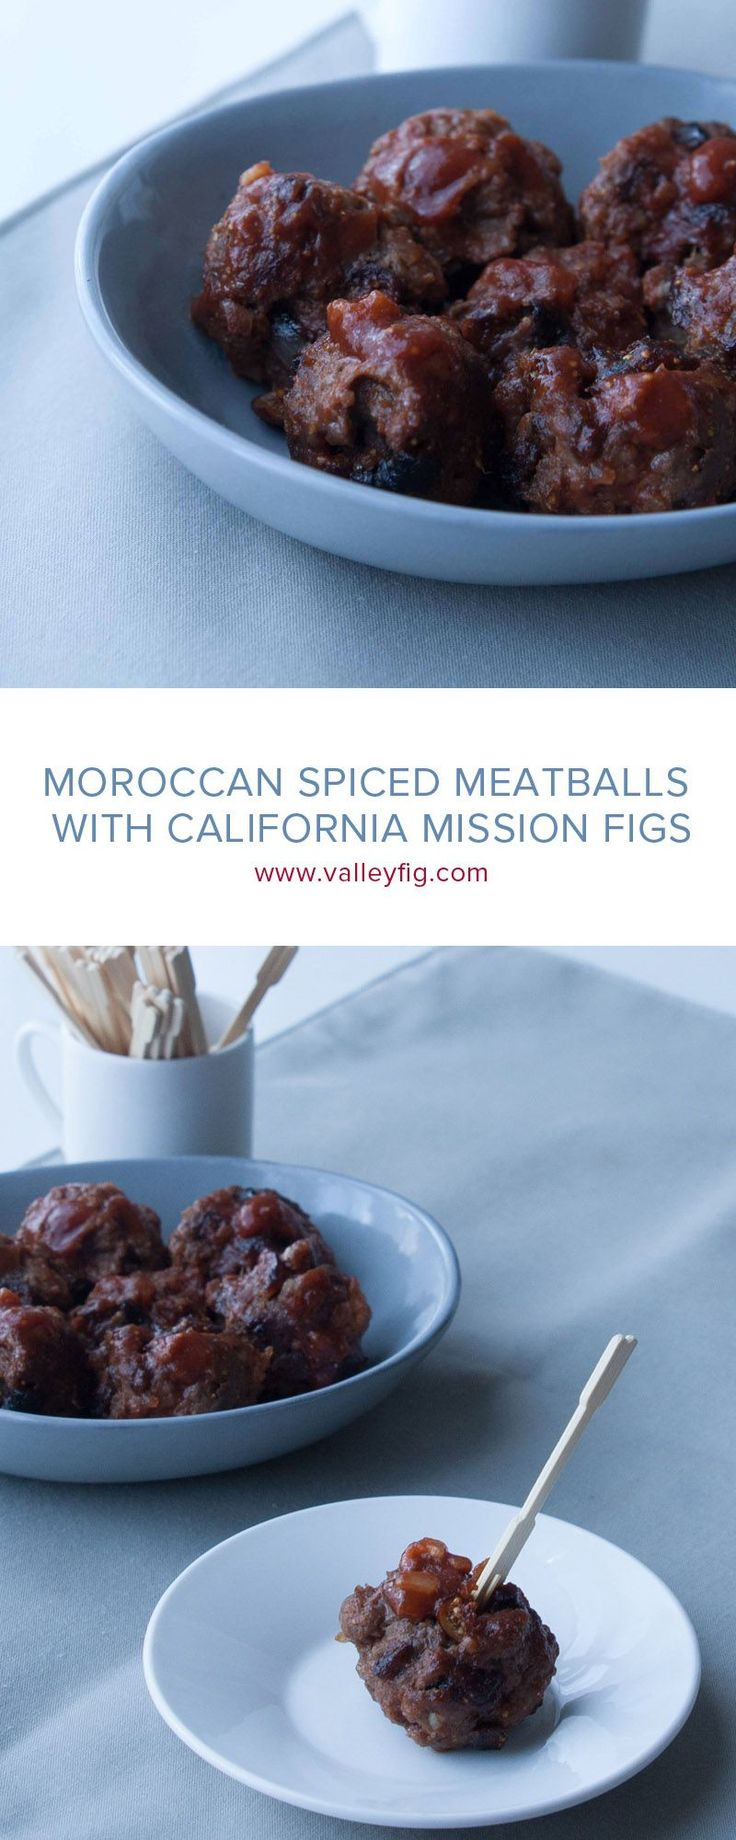 Add some spice to your appetizers with Moroccan Spiced Meatballs. Chopped California Figs add sweetness to meatball appetizers.   #figs #figappetizers #meatballs #meatballappetizers #holidayappetizers